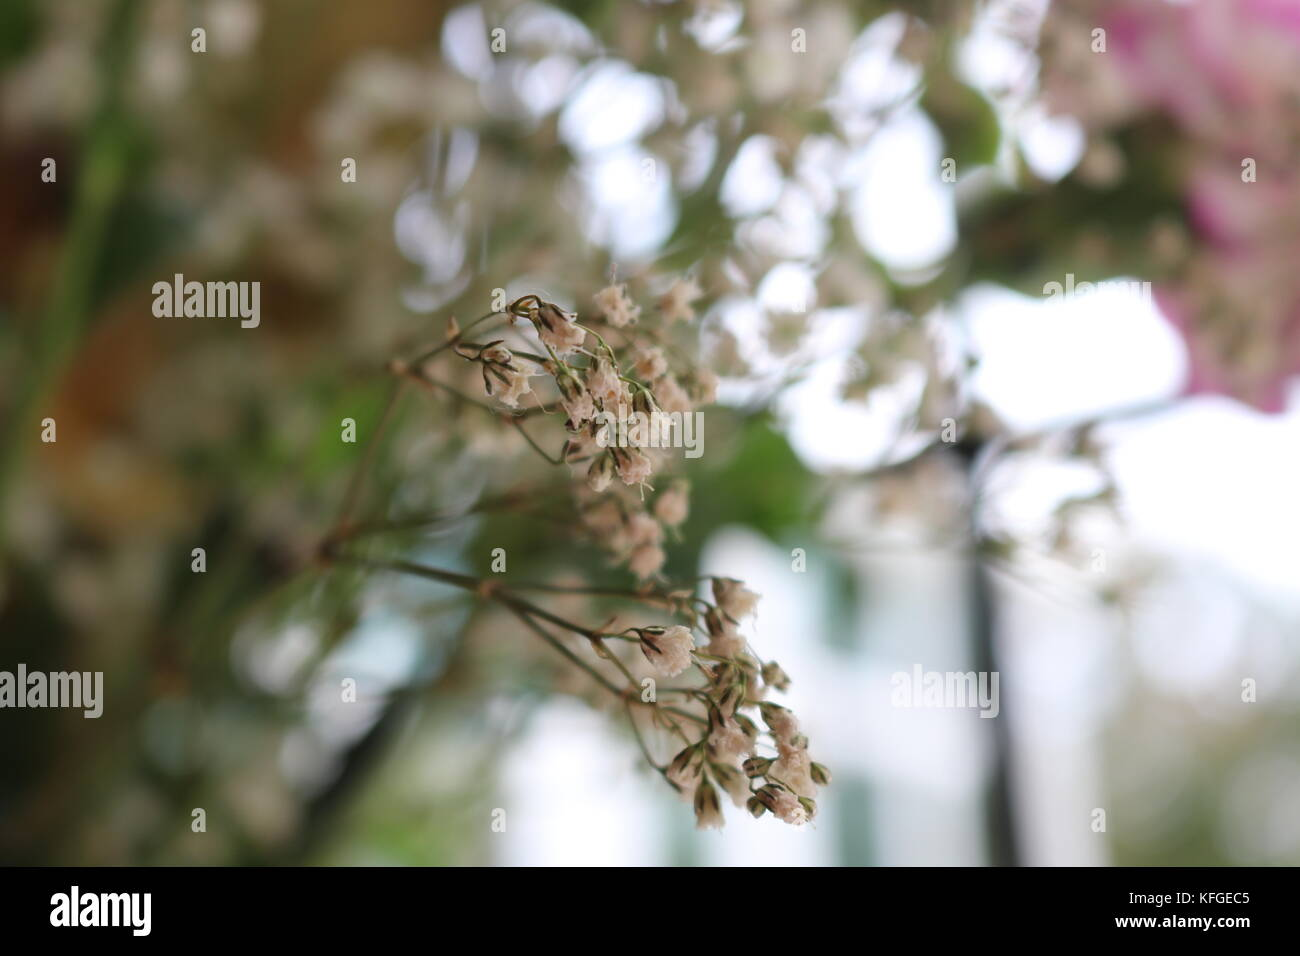 Up close shots of flowers with background blur and contrast. Nature and wildlife greenery indoors. capturing nature - Stock Image